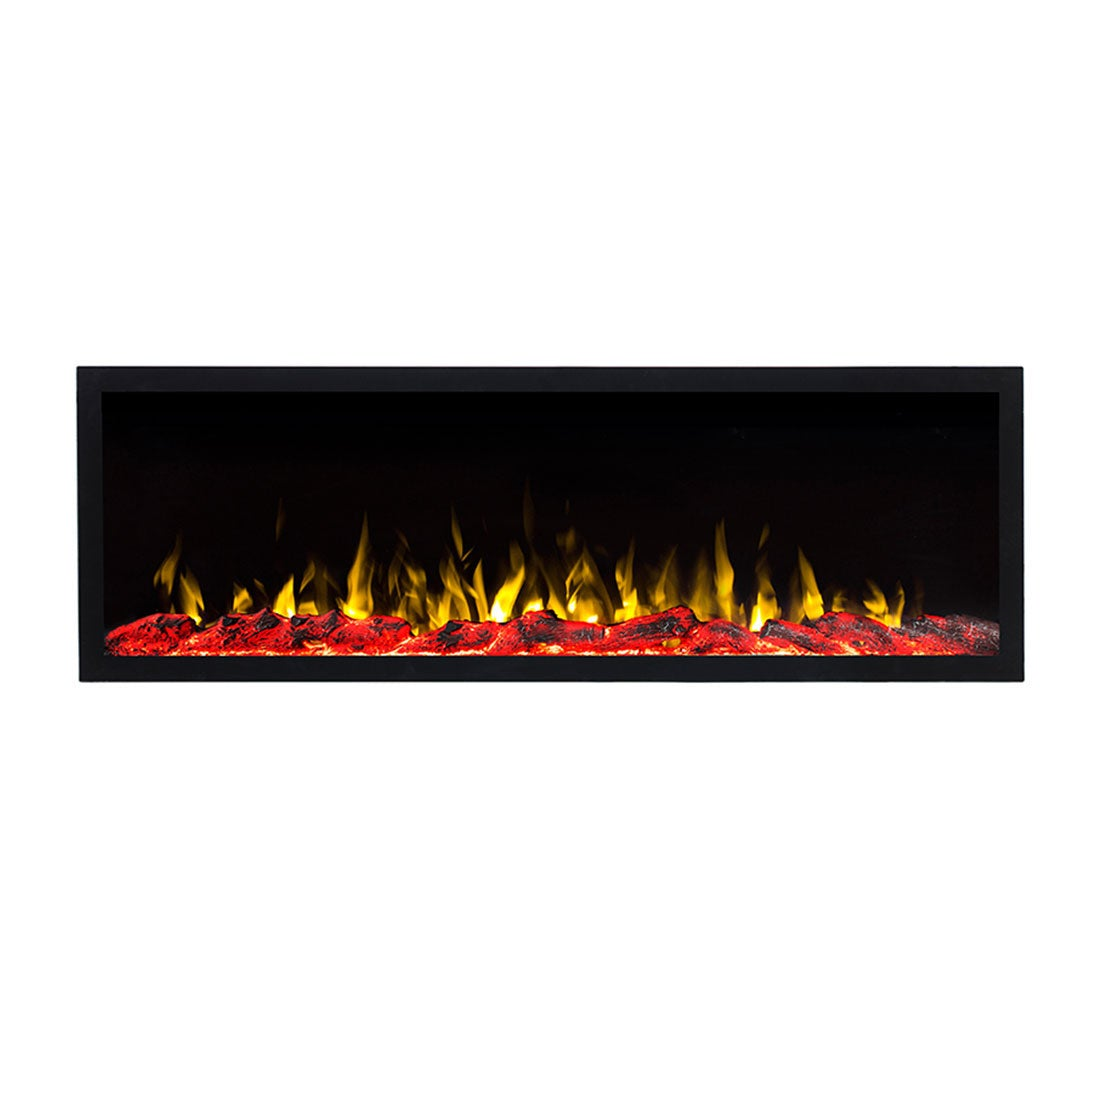 COMO 50 inch Built-in Recessed / Wall Mounted Electric Fireplace Decorative – No heat